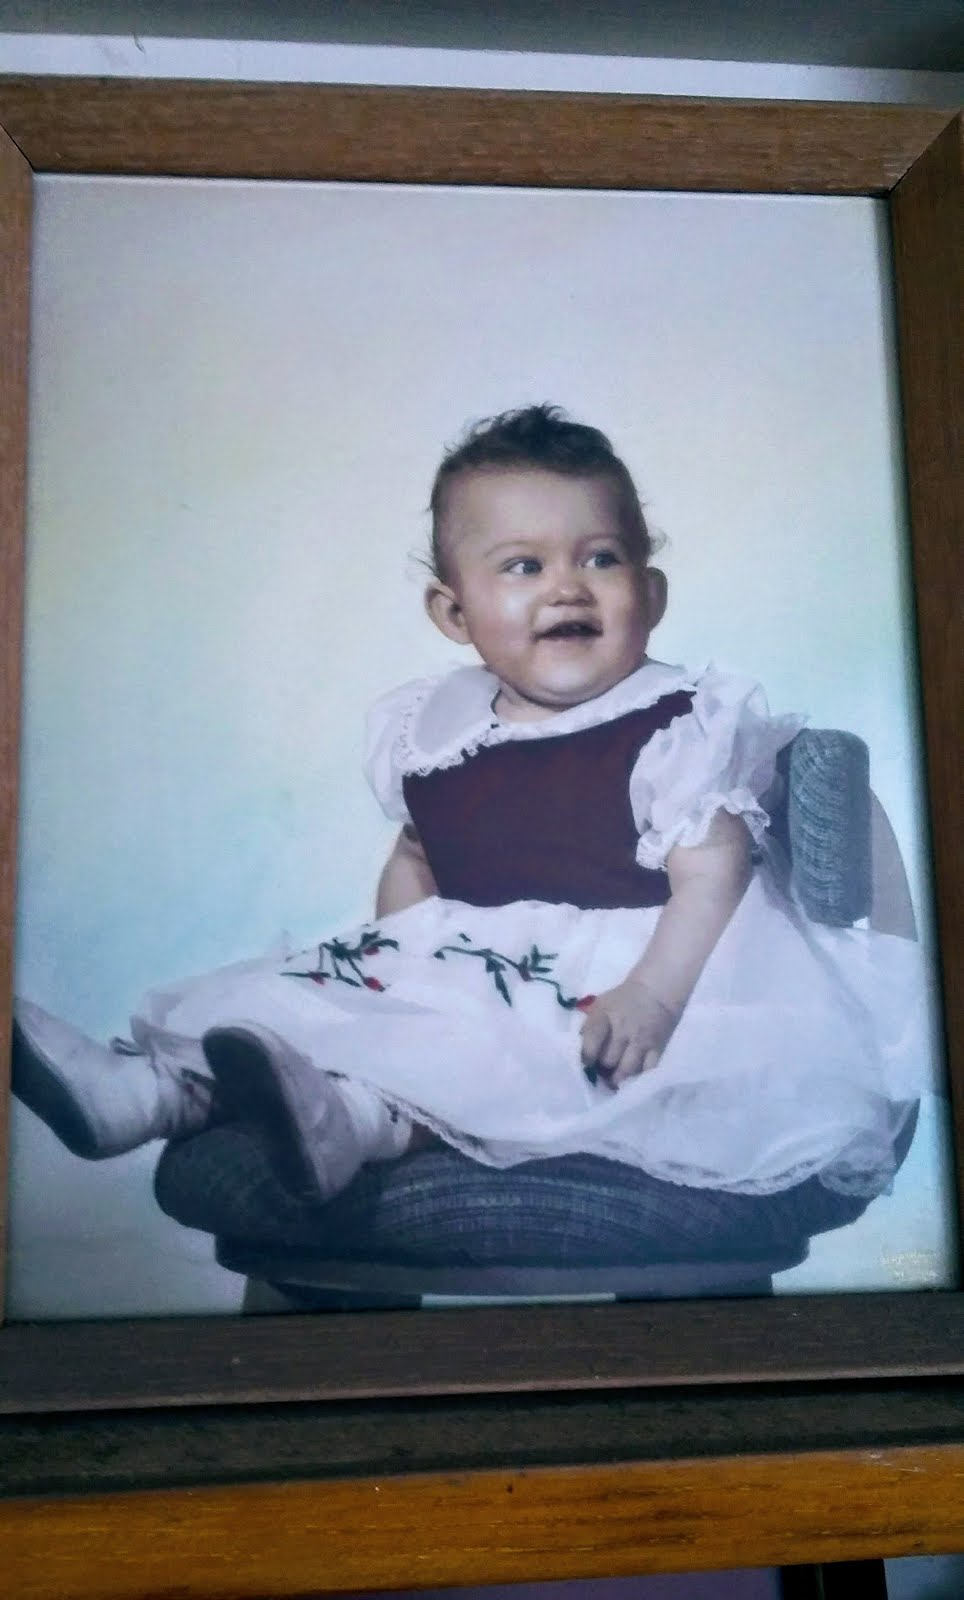 When I was a child...